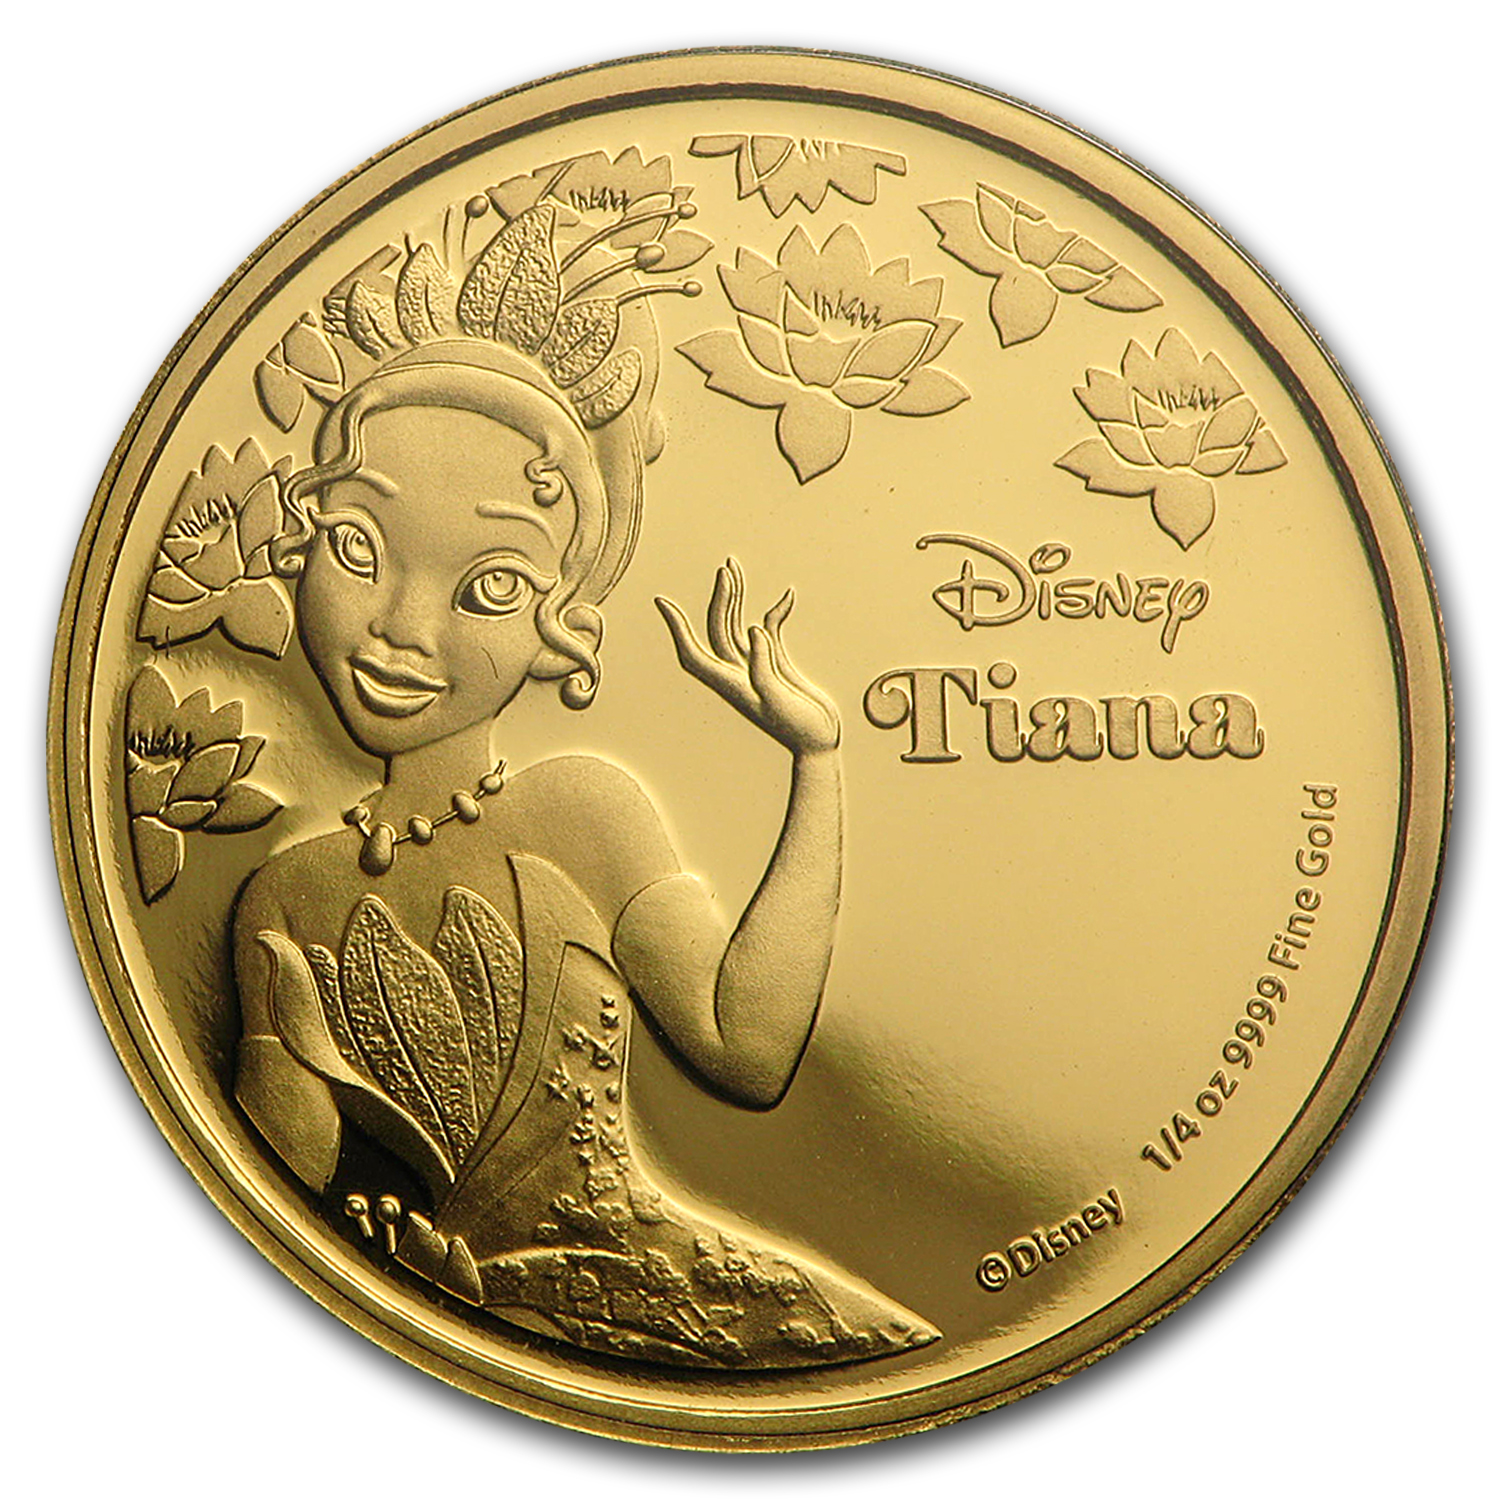 2016 Niue 1/4 oz Proof Gold $25 Disney Princess Tiana